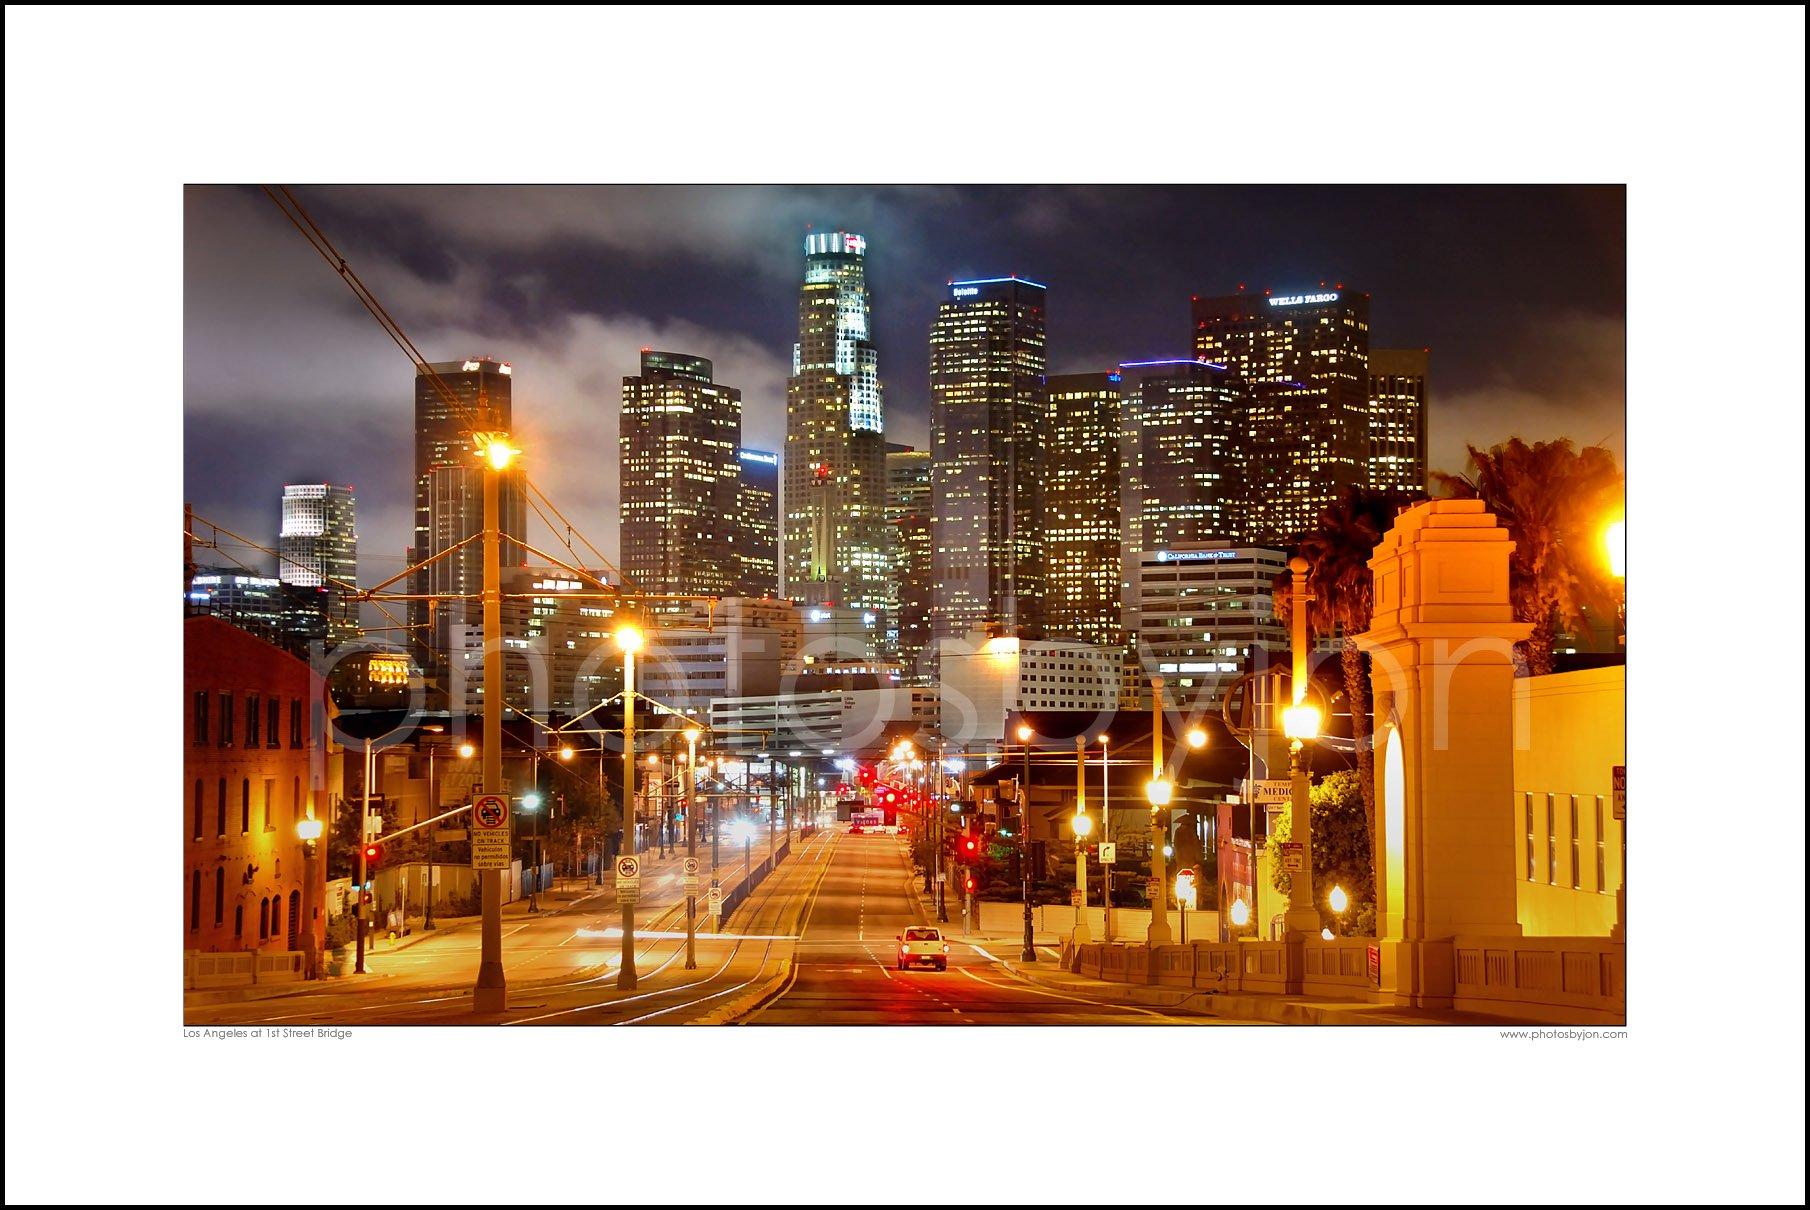 Los Angeles Skyline NIGHT View from East LA CHOOSE FROM TWO SIZES Photographic Panorama Poster Print Photo Picture Standard Frame Size by photosbyjon